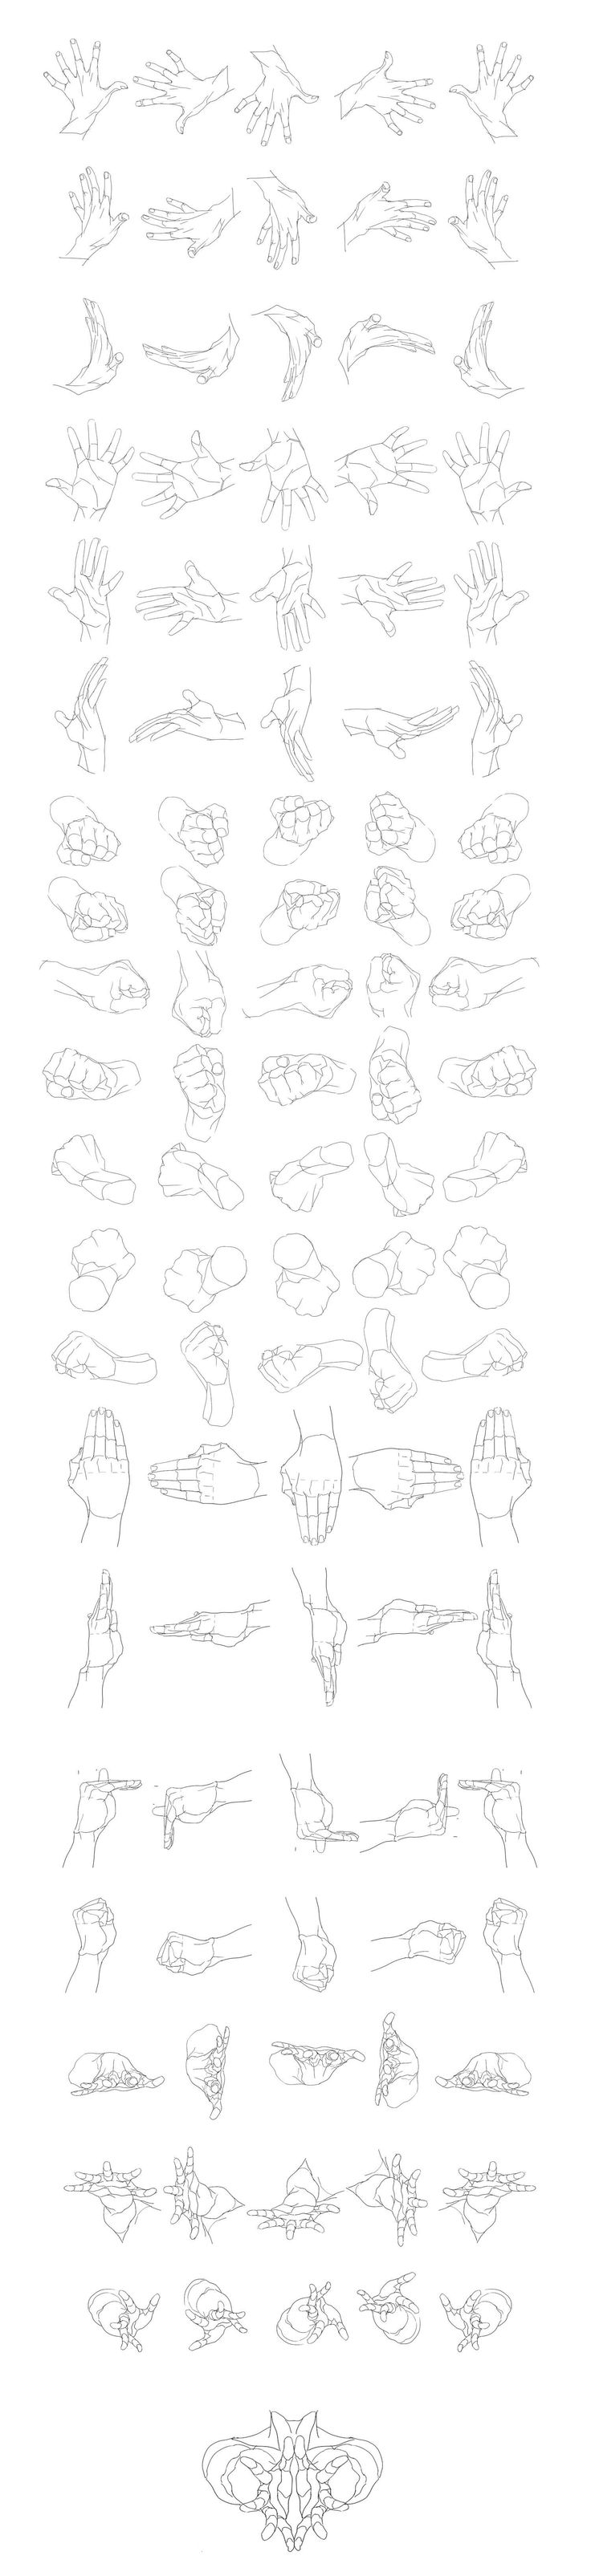 """""""Hands Movement/Rotation"""" by 0033*   • Blog/Website   (http://www.pixiv.net/member.php?id=59317)    ★    CHARACTER DESIGN REFERENCES (https://www.facebook.com/CharacterDesignReferences & https://www.pinterest.com/characterdesigh) • Love Character Design? Join the #CDChallenge (link→ https://www.facebook.com/groups/CharacterDesignChallenge) Share your unique vision of a theme, promote your art in a community of over 40.000 artists!    ★"""